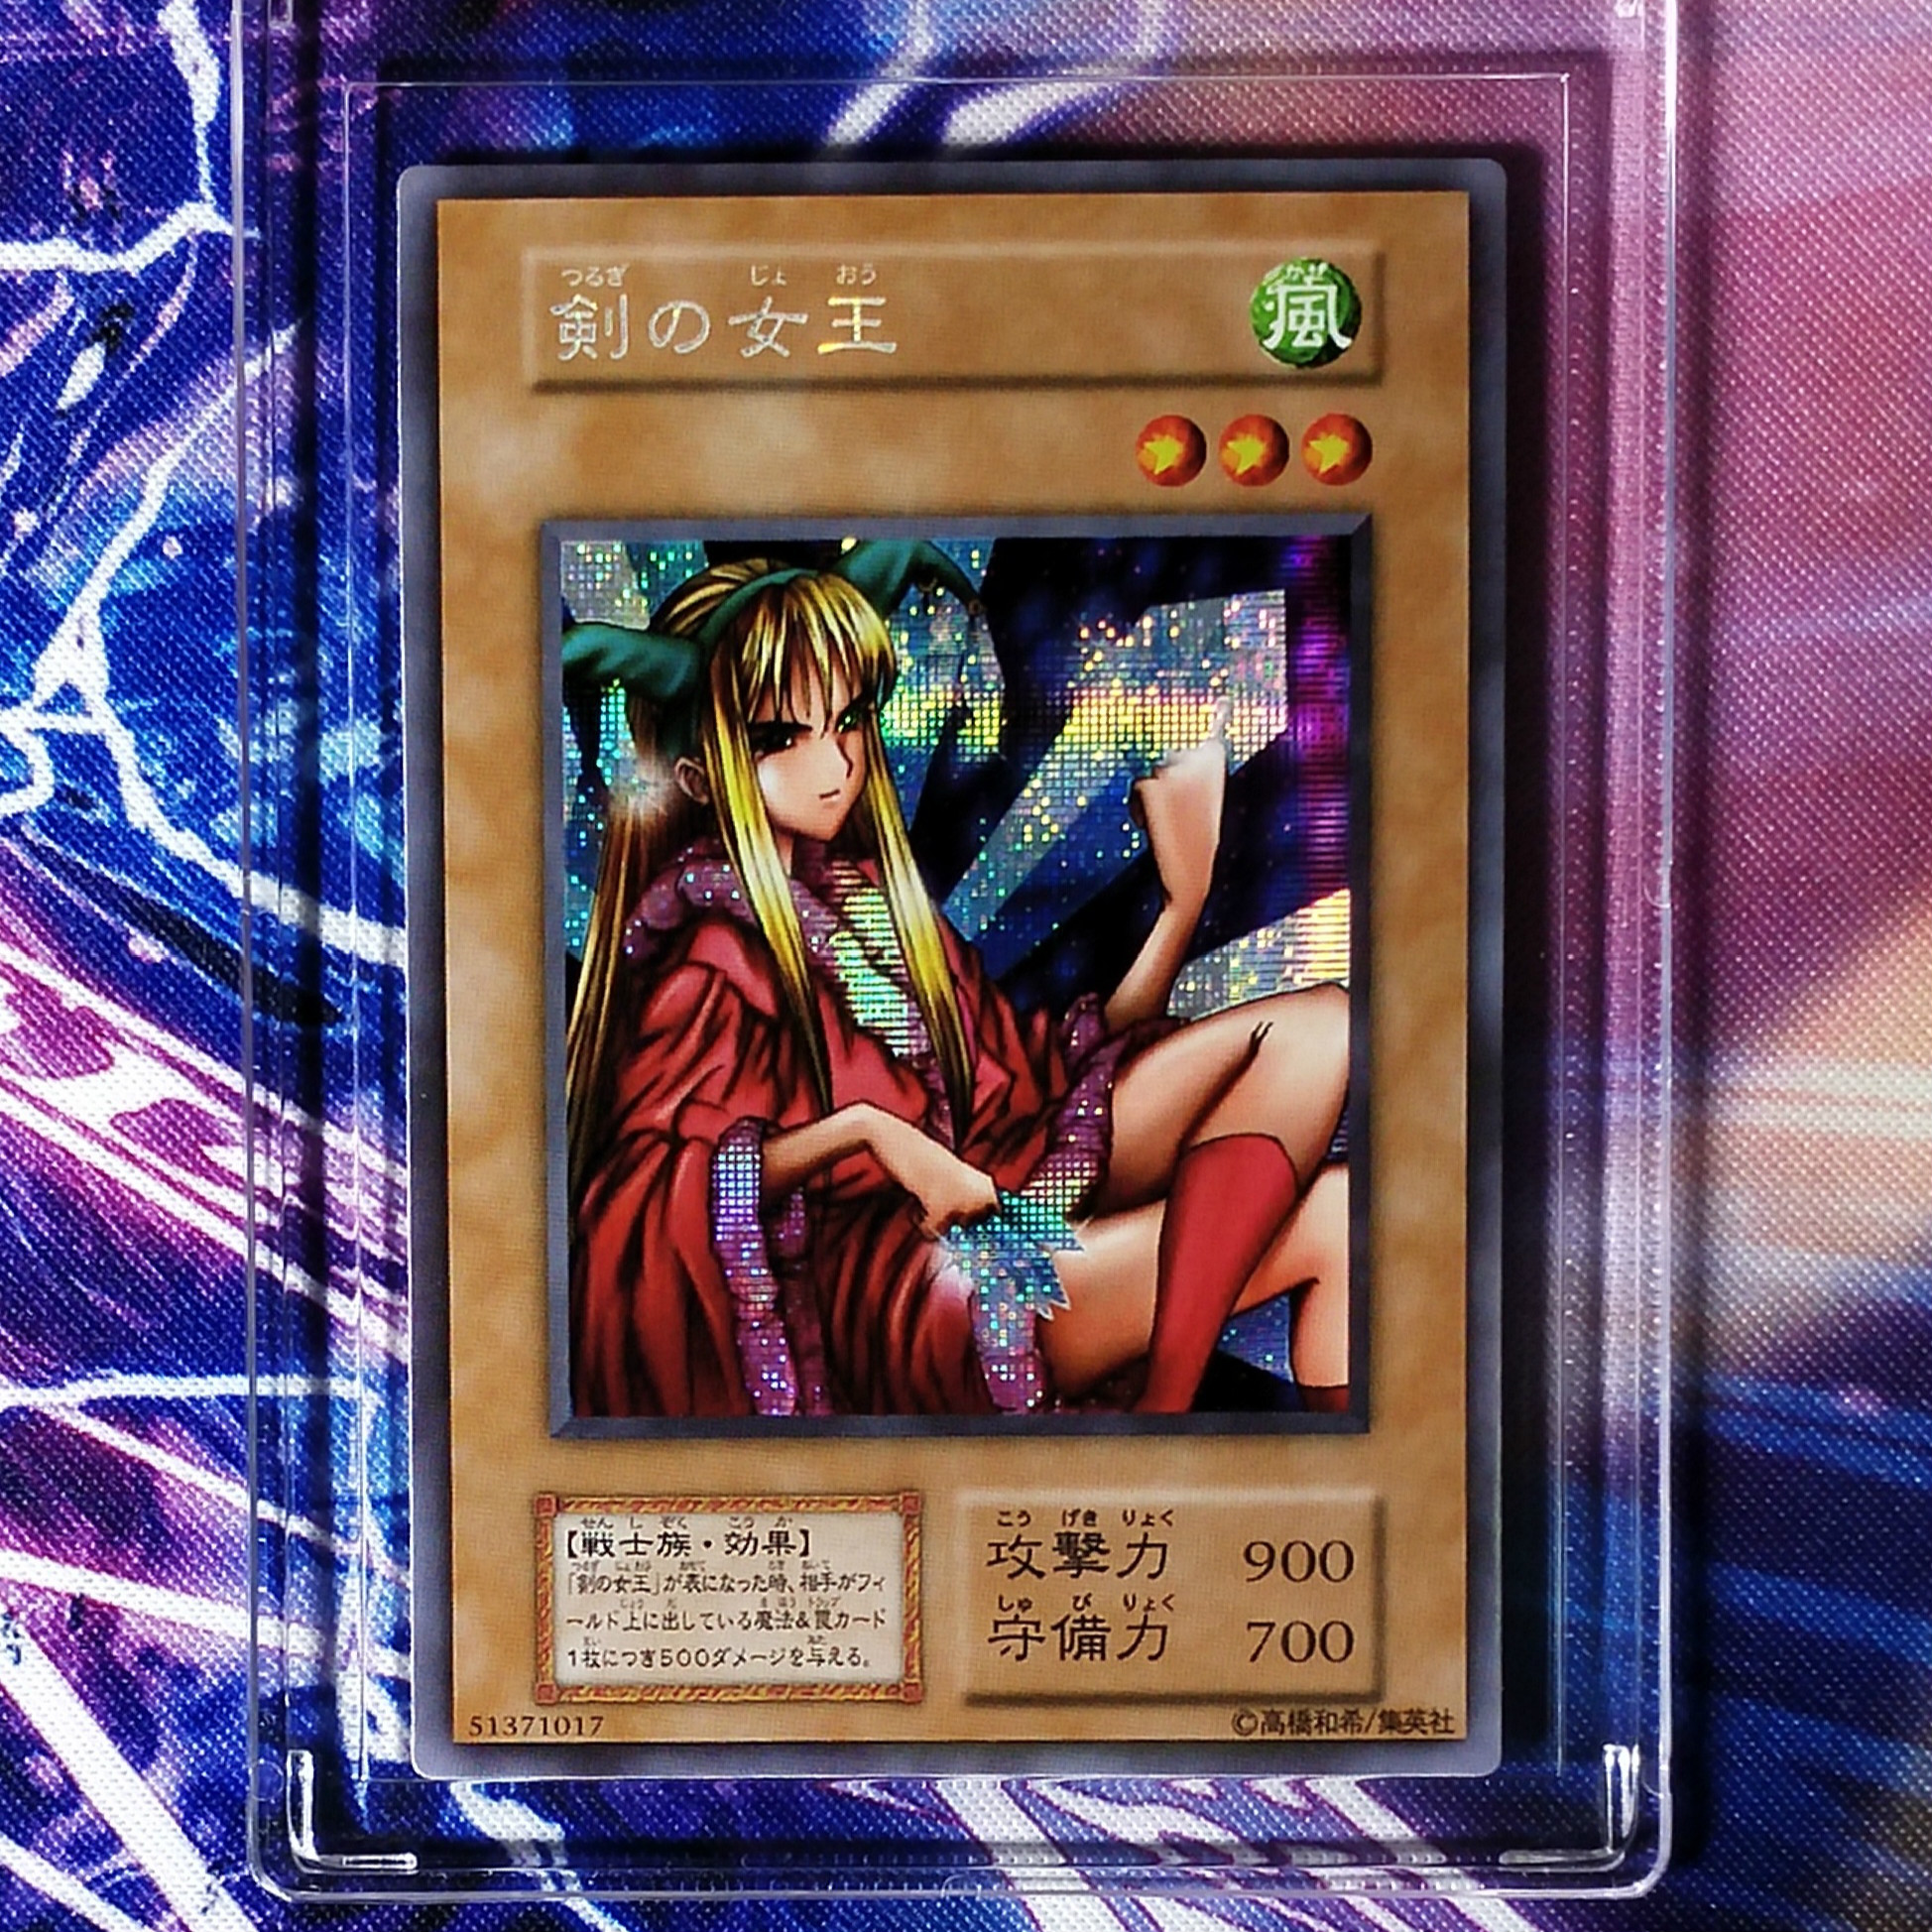 Yu Gi Oh Princess Of Tsurugi DIY Colorful Toys Hobbies Hobby Collectibles Game Collection Anime Cards